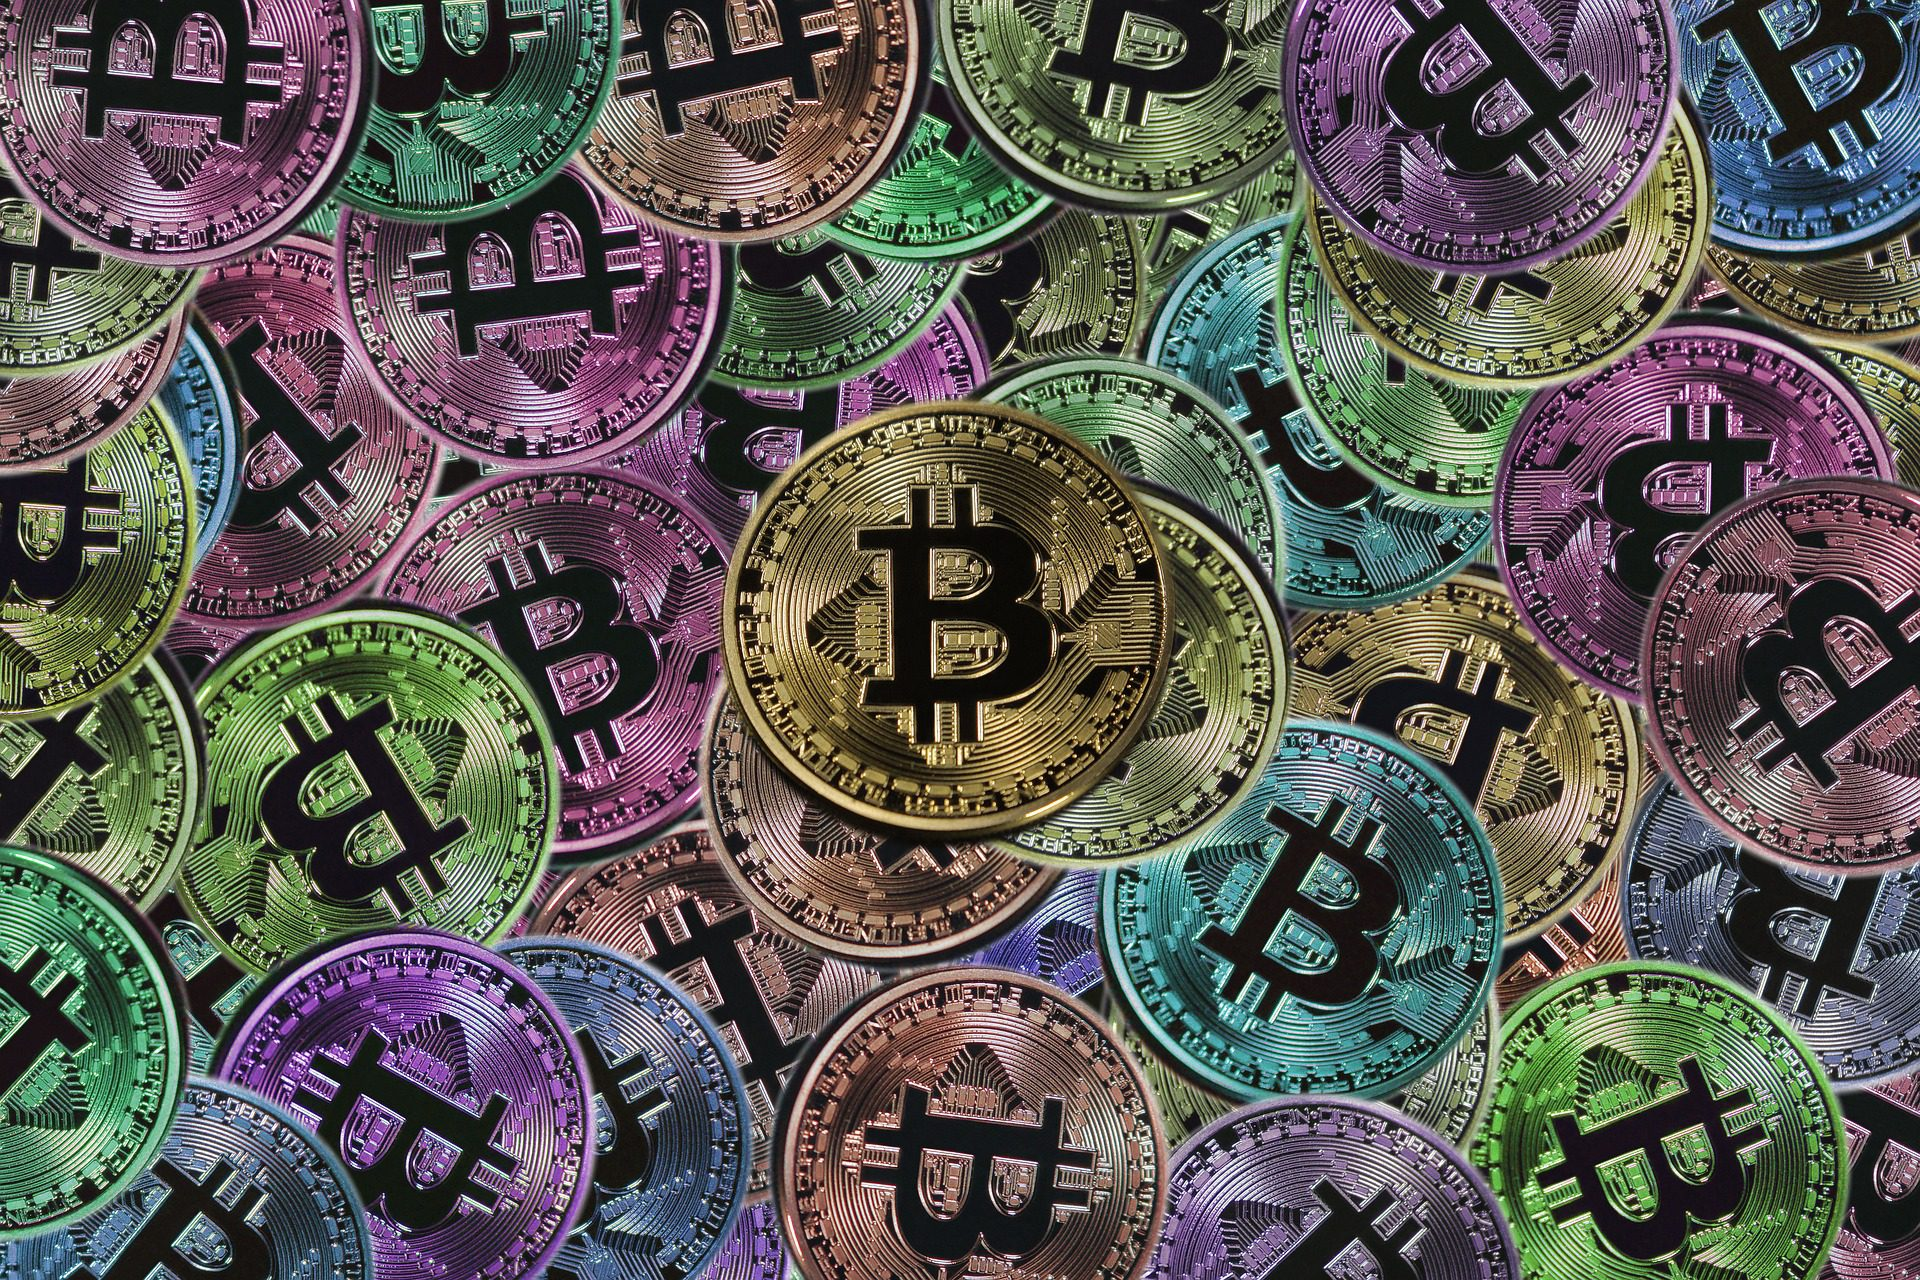 Backpage and Bitcoin: Uncovering Human Traffickers